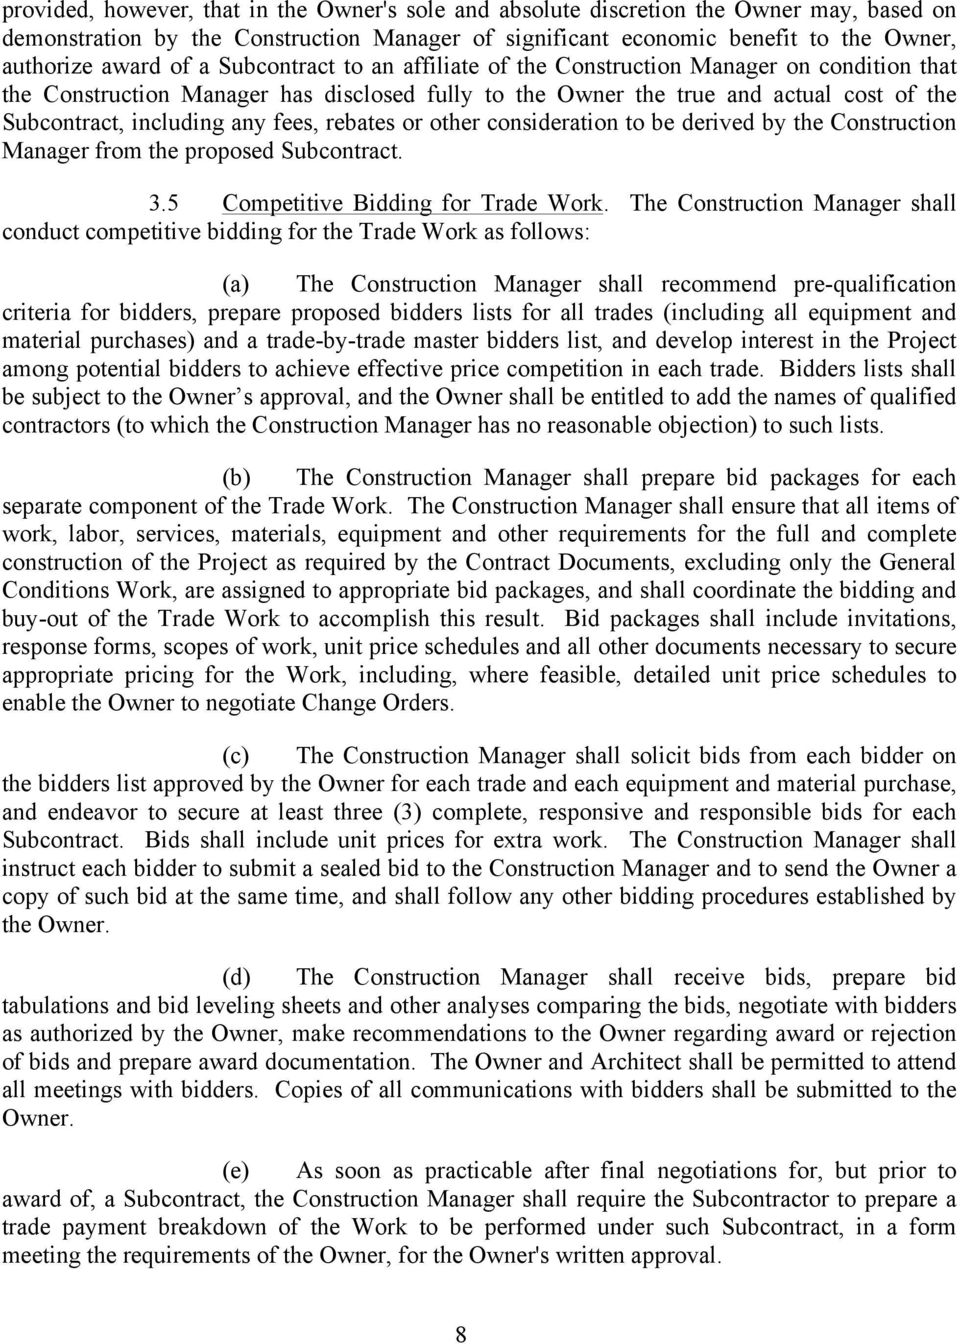 construction management agreement by and between nyu hospitals